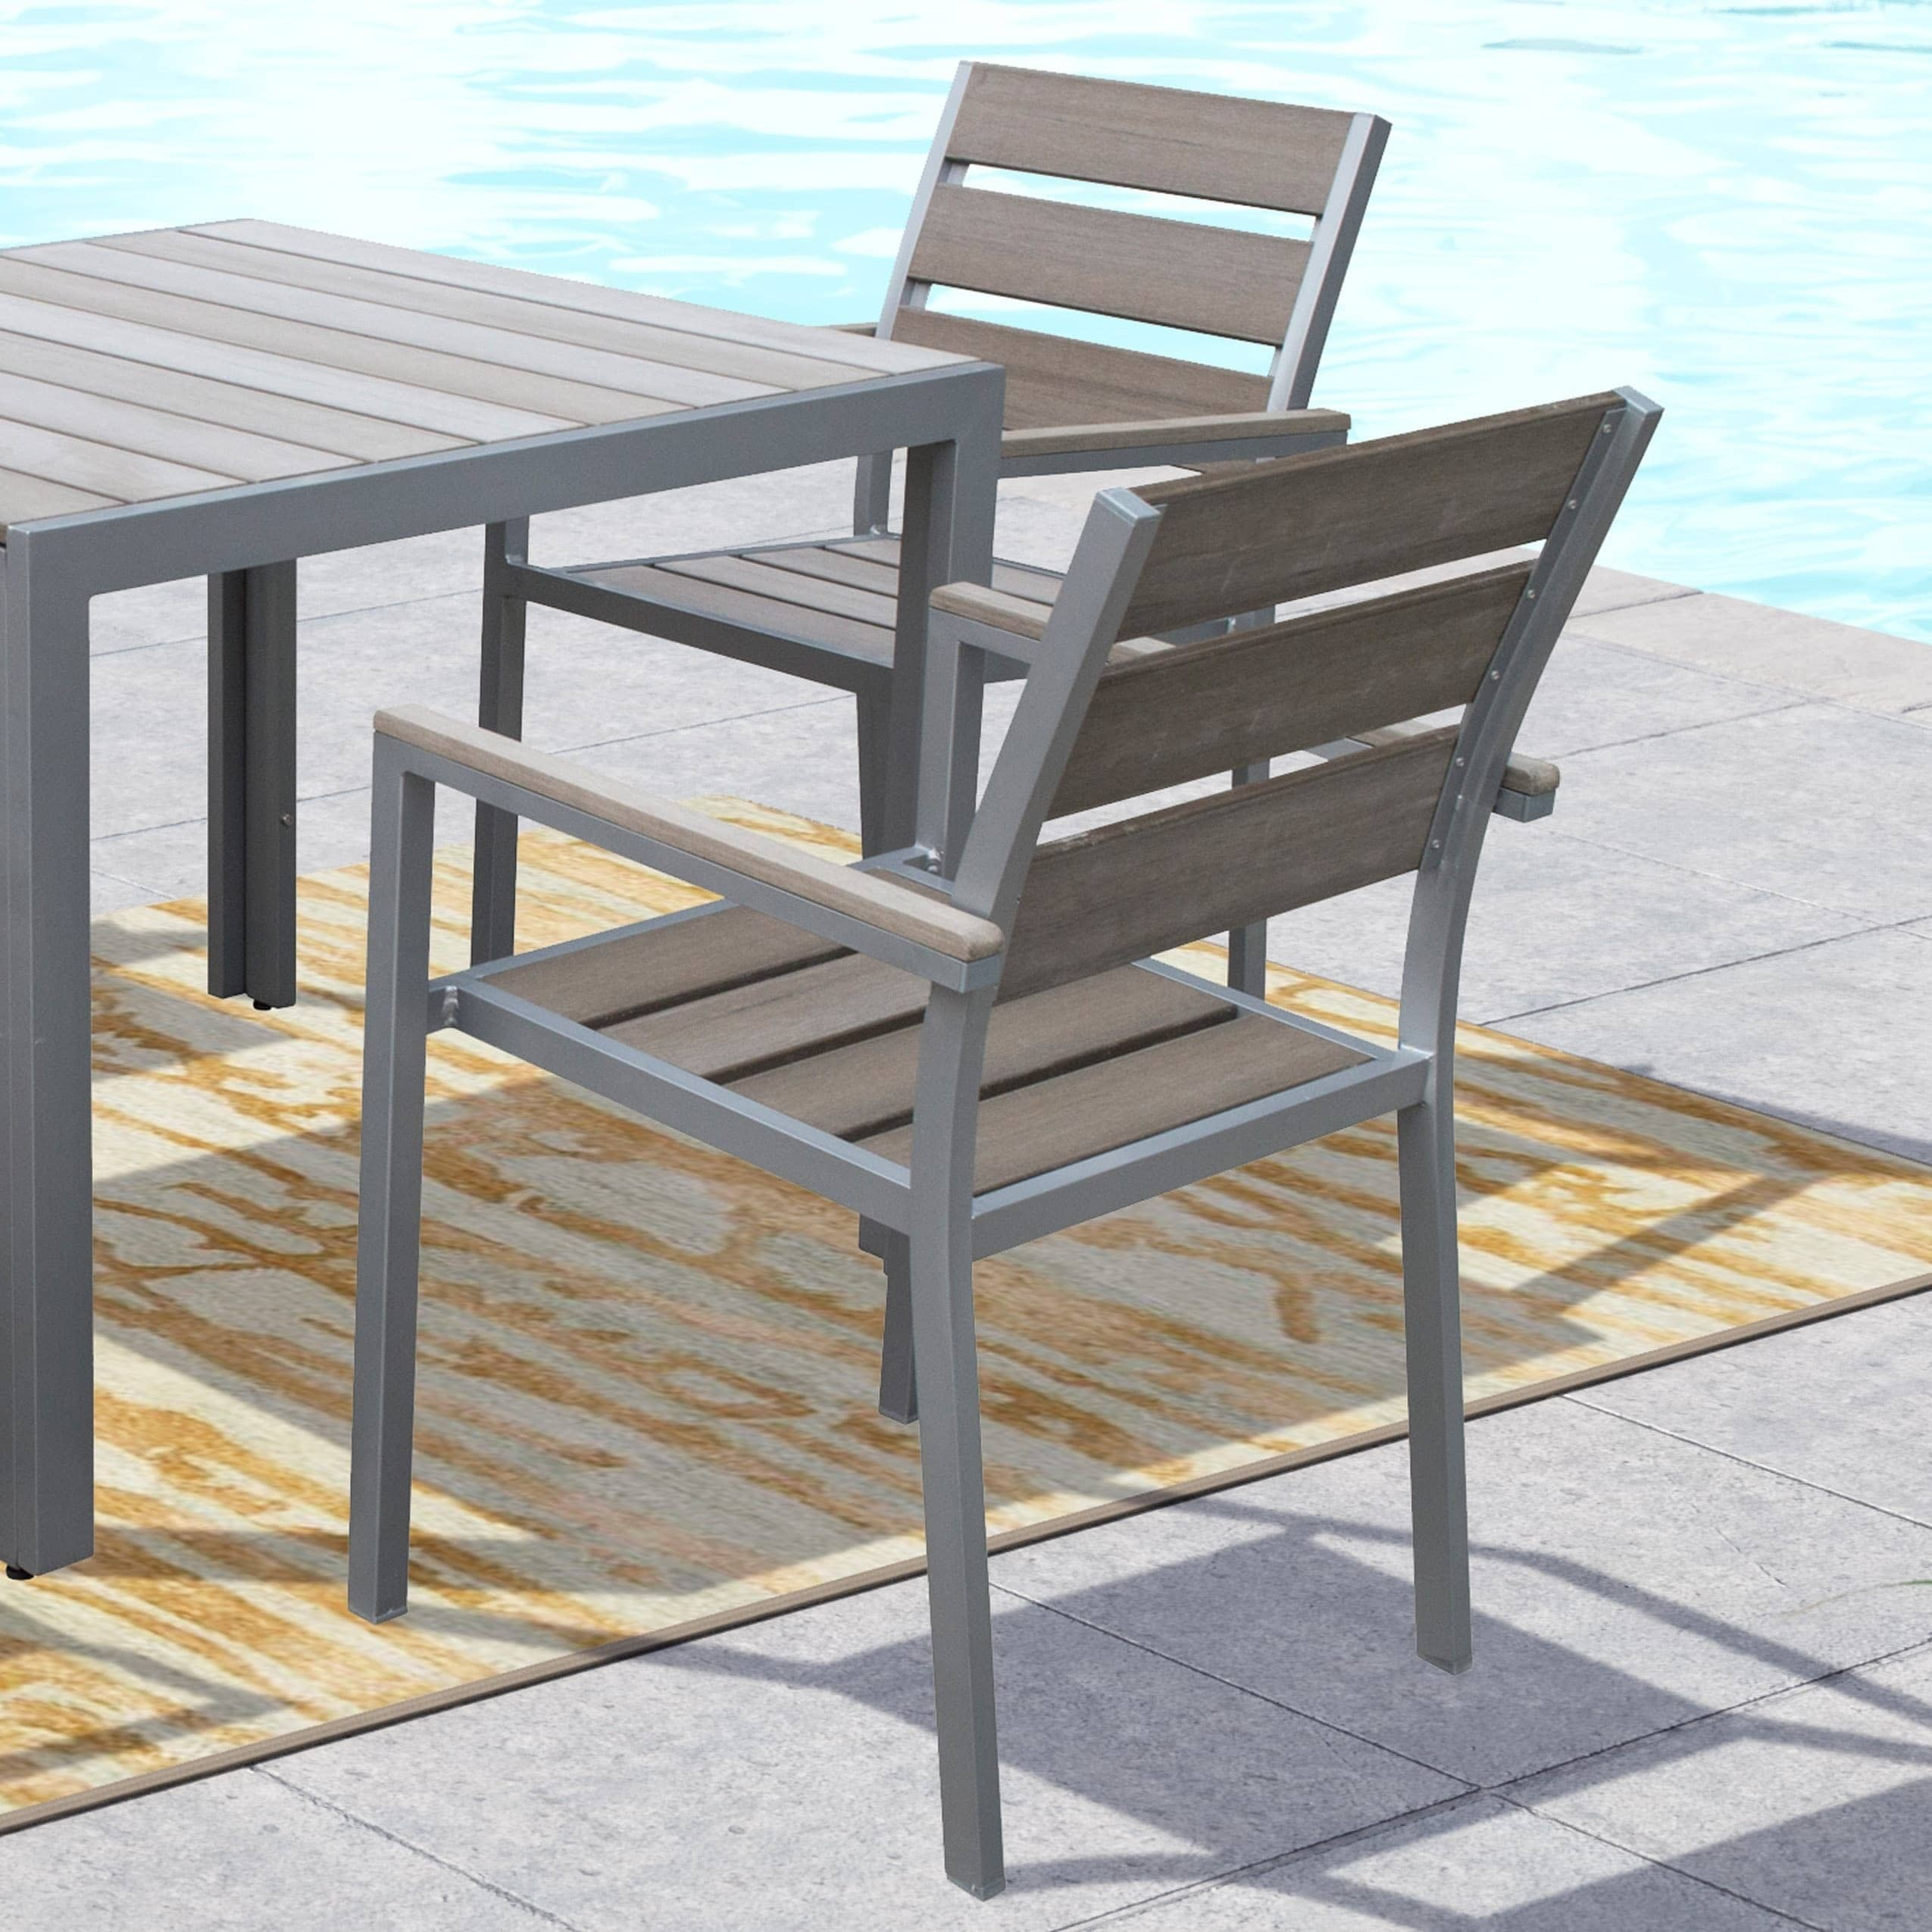 Excellent Havenside Home Tumaco Sun Bleached Grey Outdoor Dining Chairs Machost Co Dining Chair Design Ideas Machostcouk